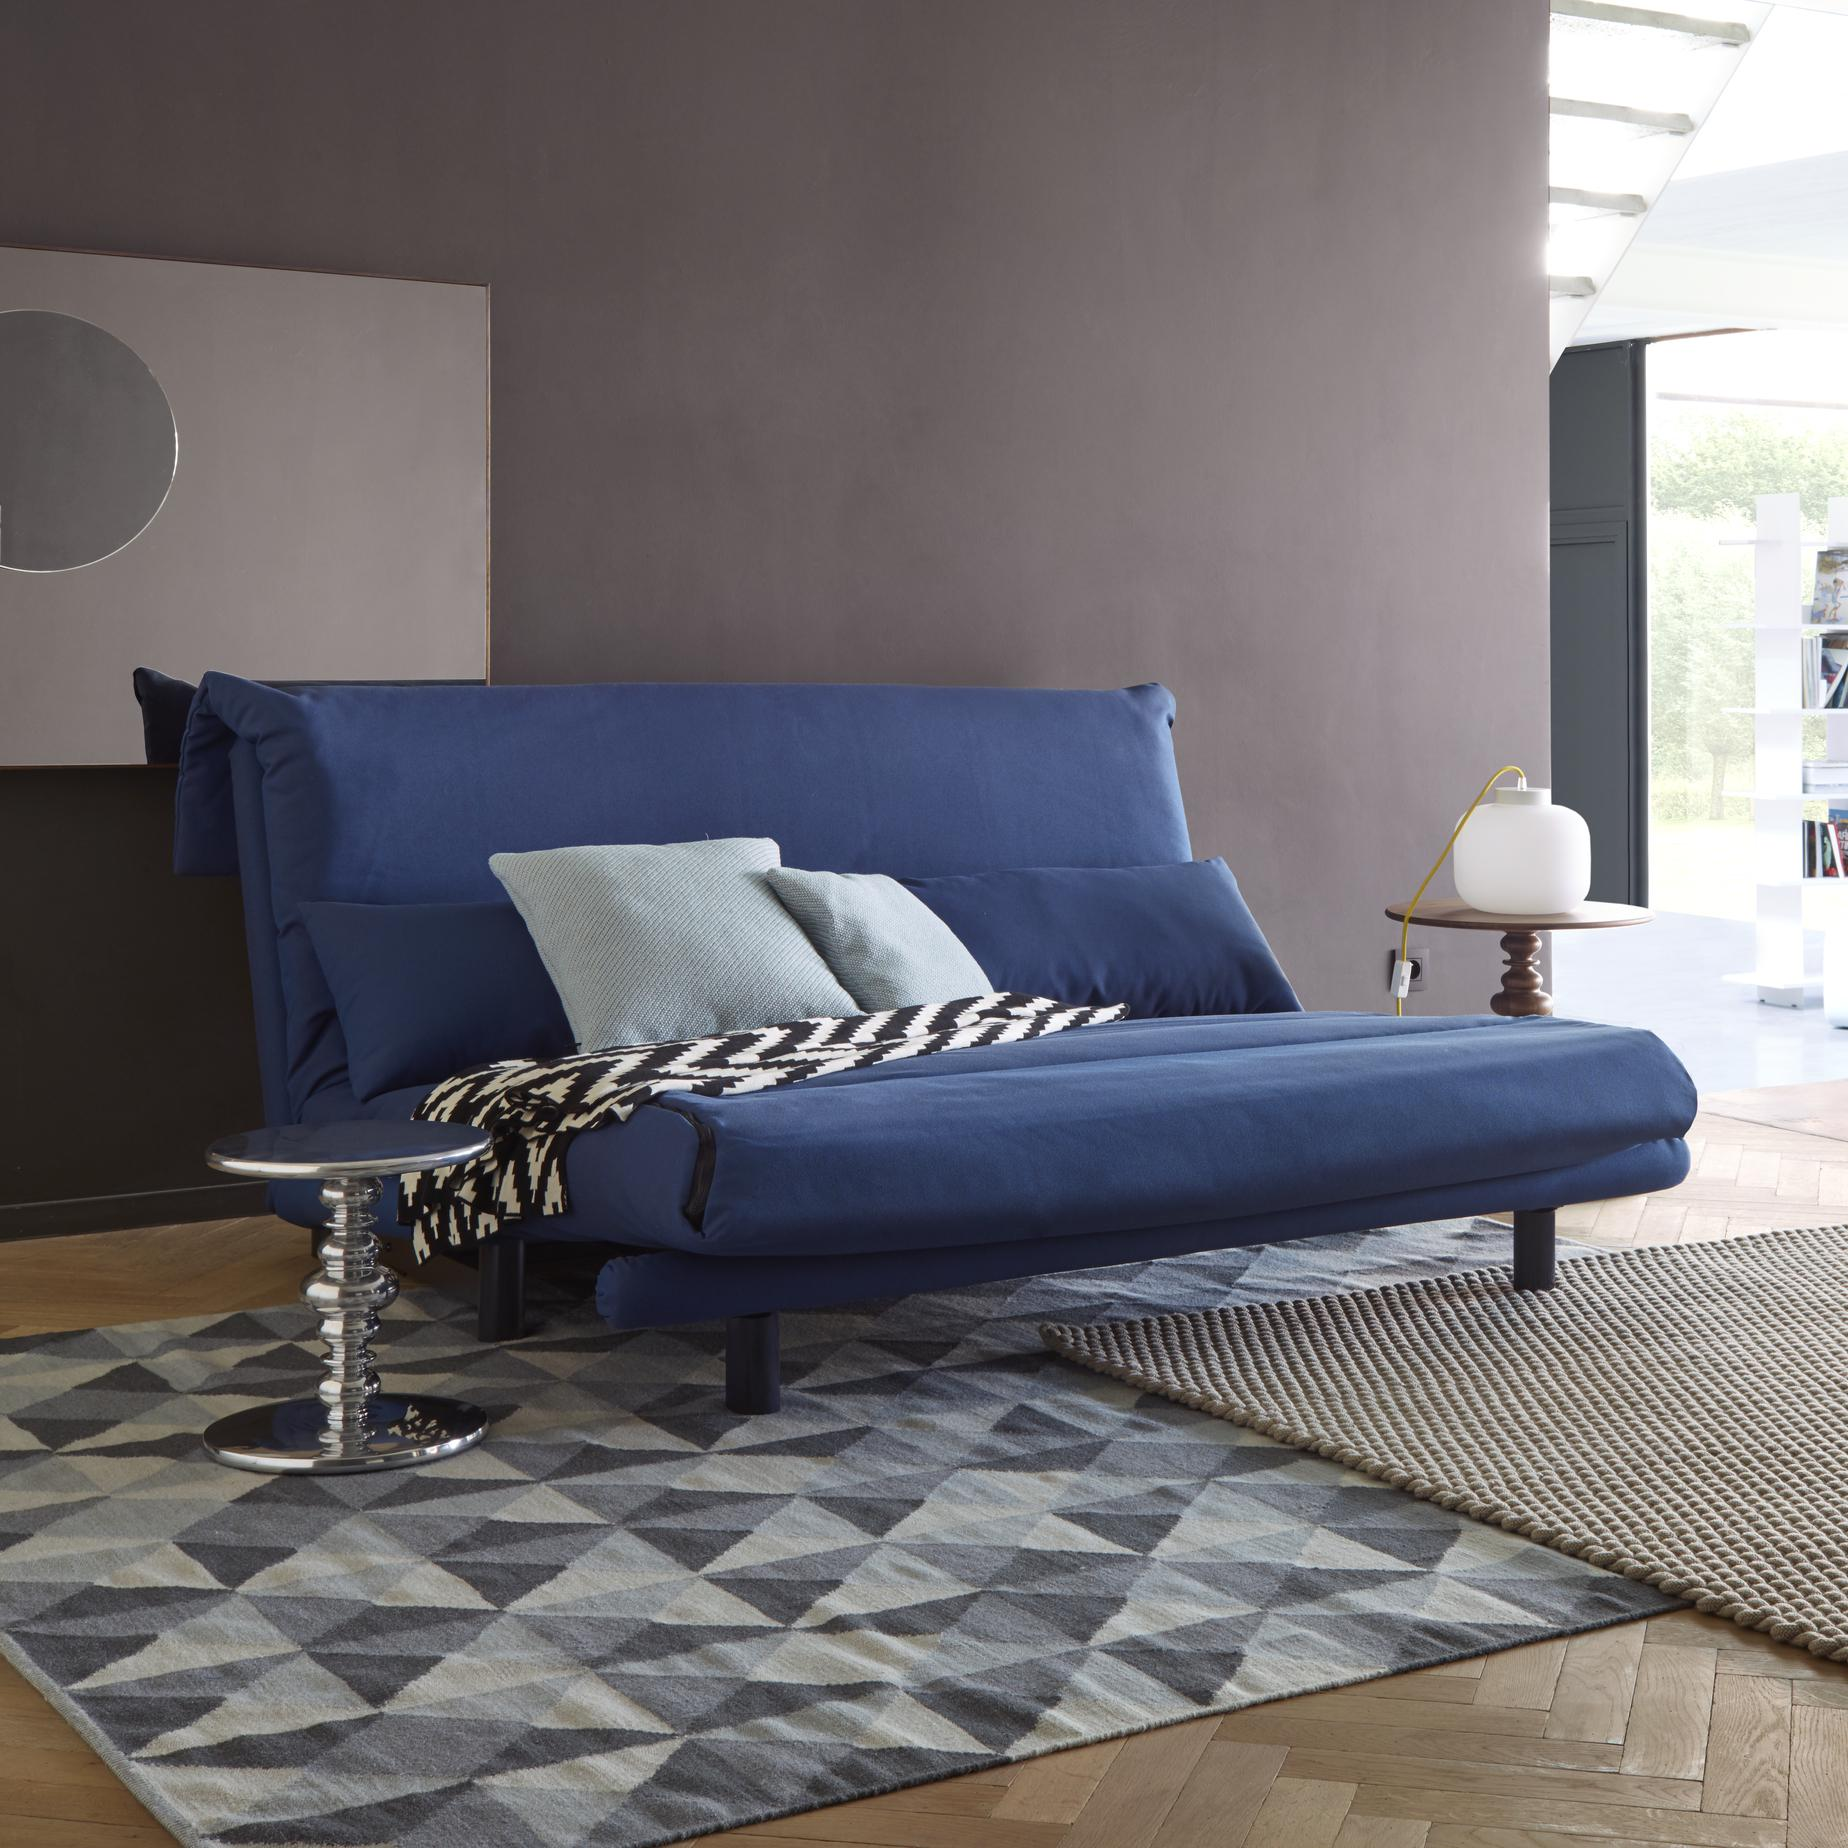 Multy Sofa Beds From Designer Claude Brisson Ligne